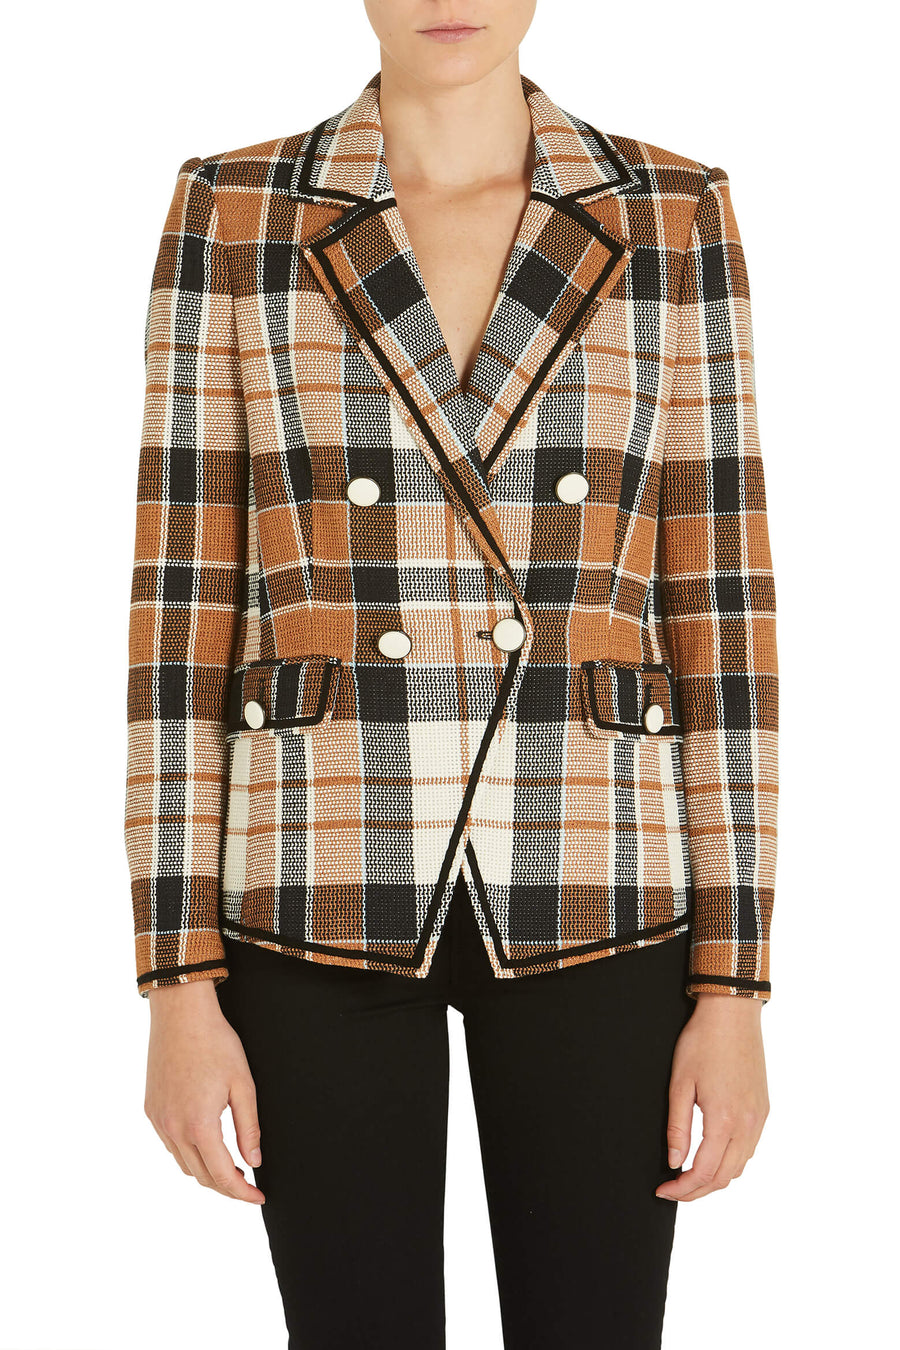 Veronica Beard Utah Jacket from The New Trend